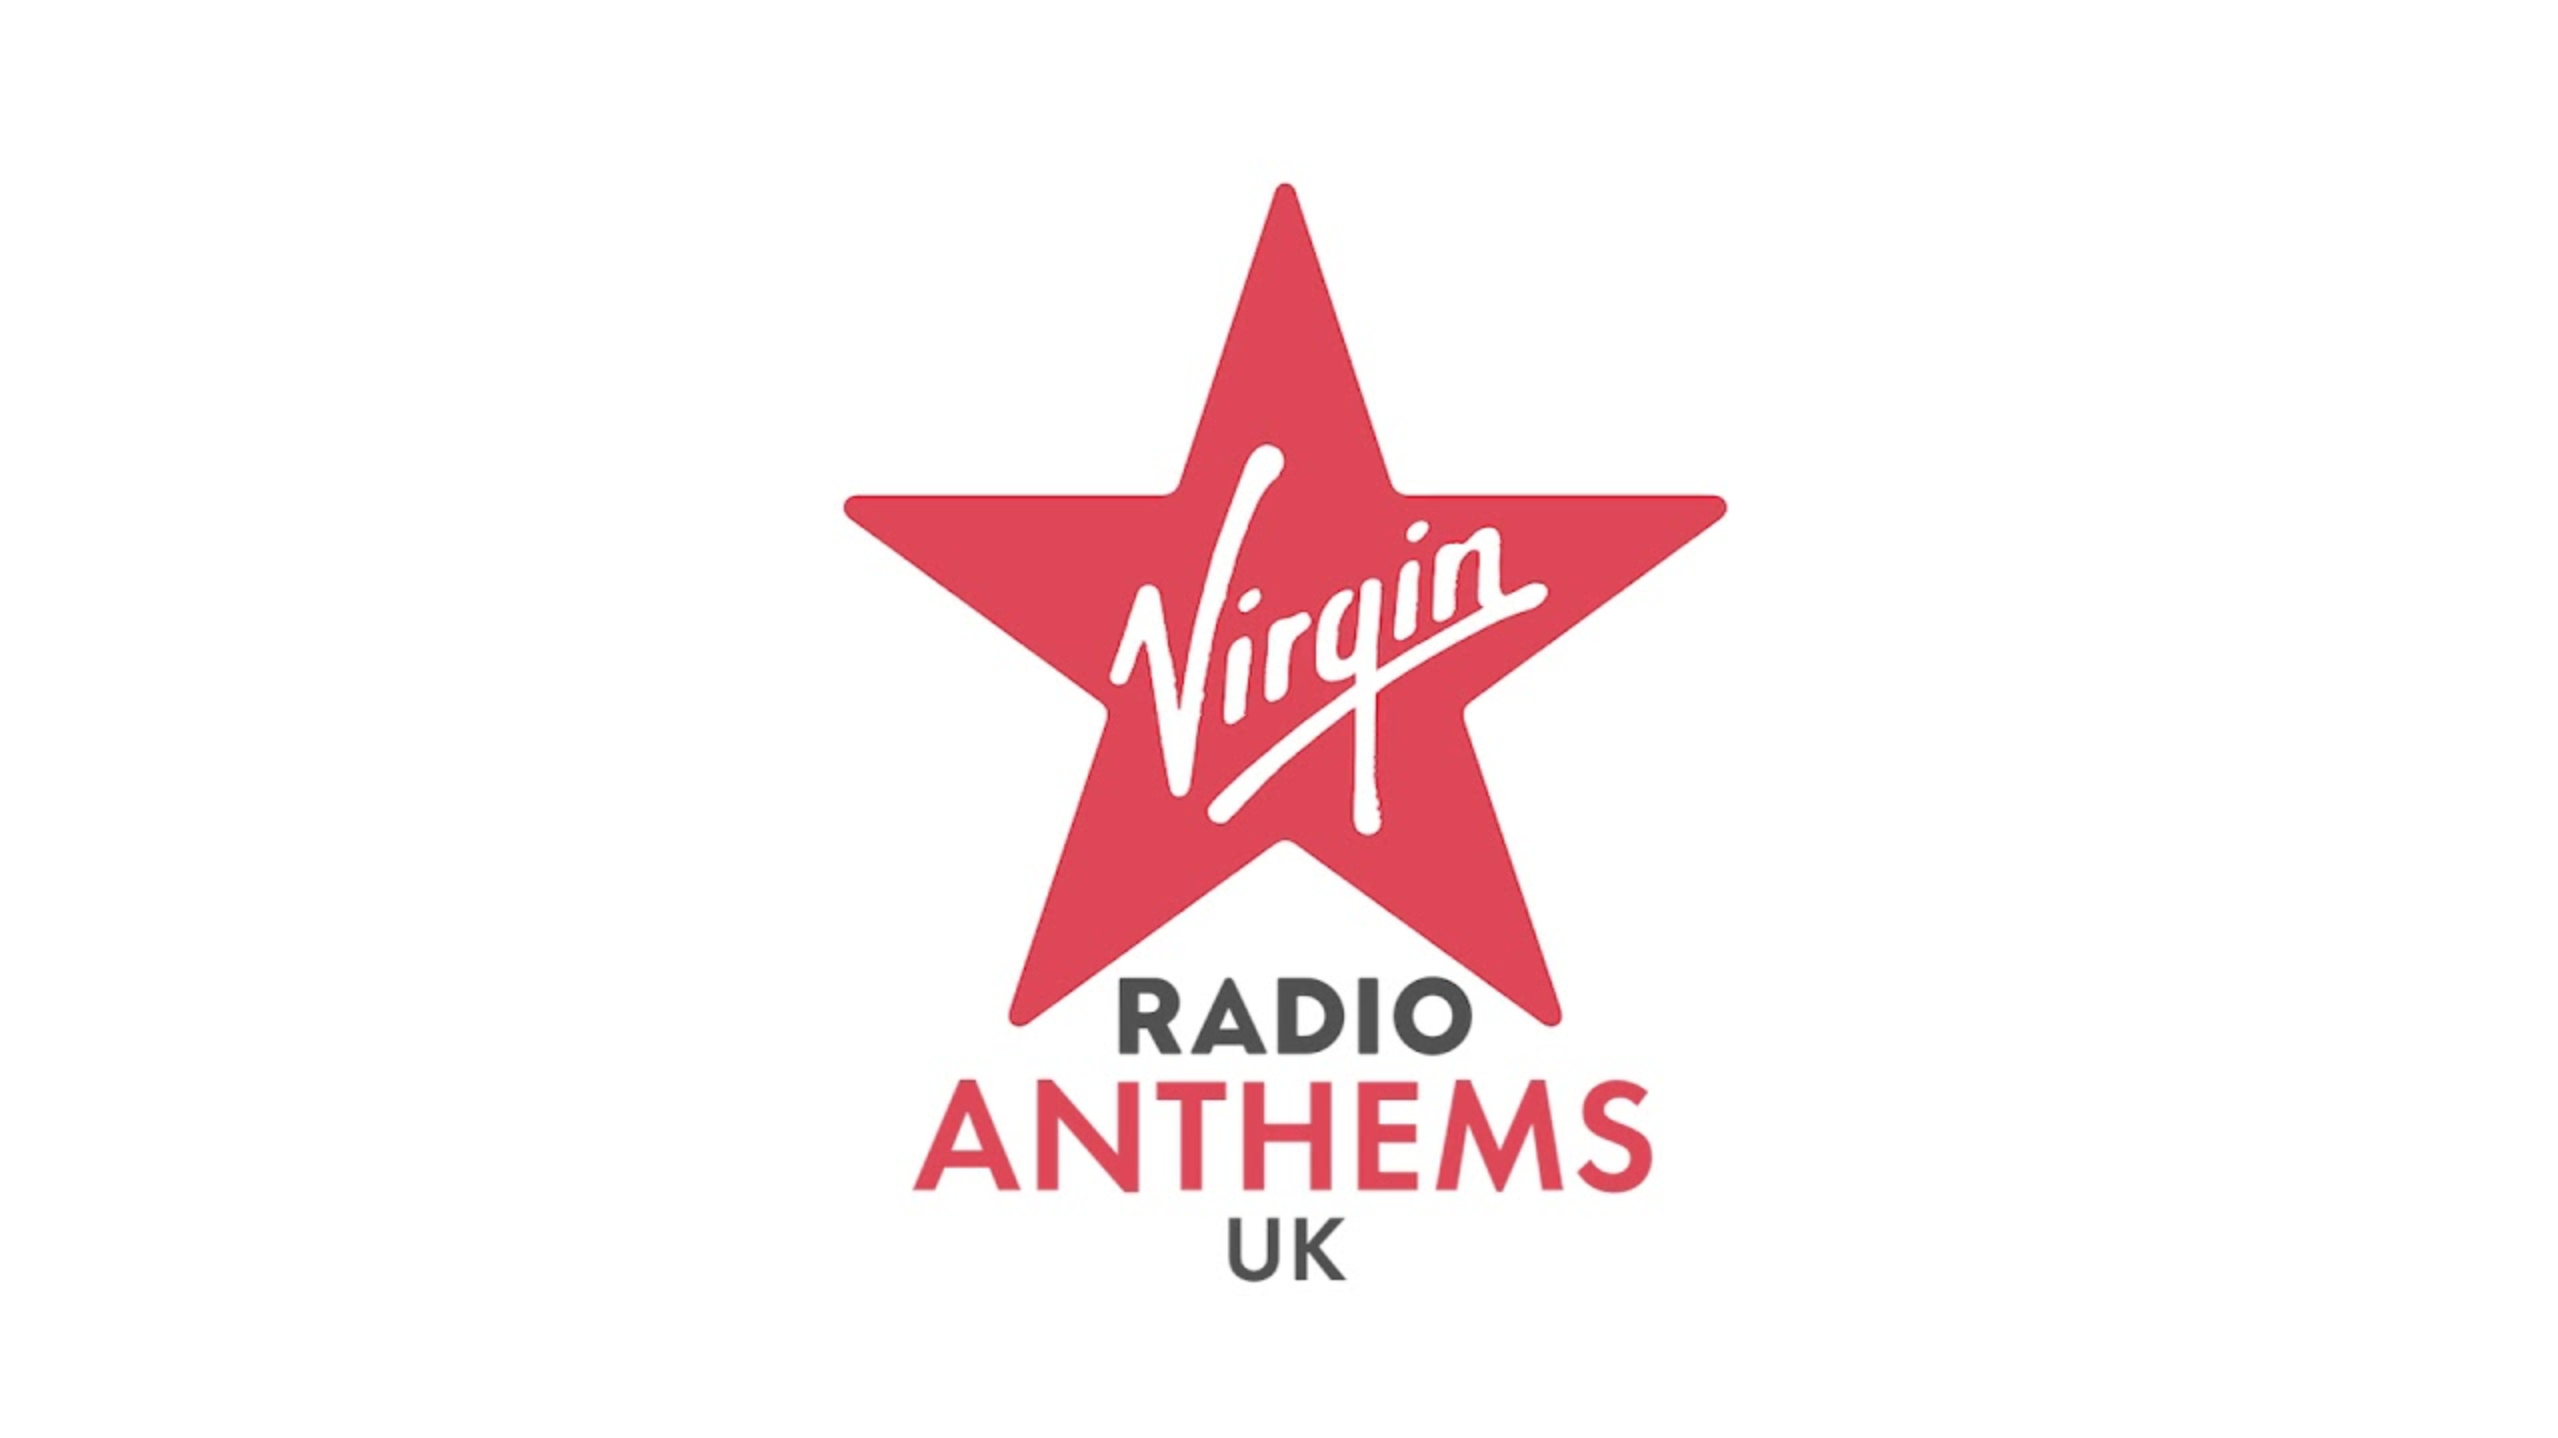 Virgin Radio Anthems UK logo